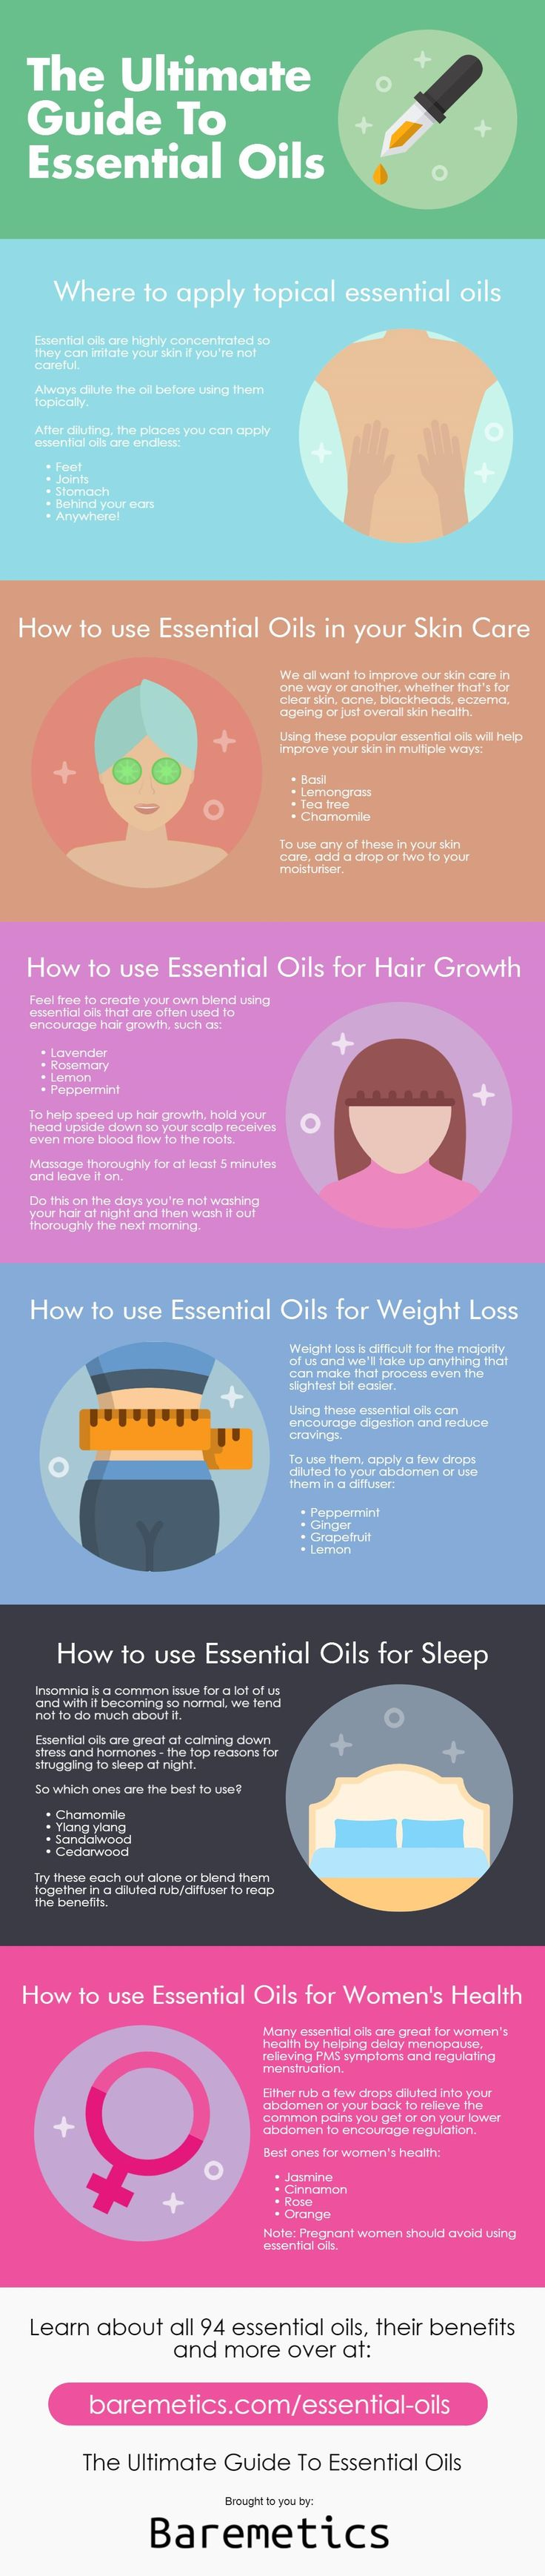 The Ultimate Guide To Essential Oils: There are 94 essential oils, each with their own list of benefits and uses. Use this infographic to learn how to apply them, use them in your skin care, for hair growth, weight loss, sleep and women's health. Read the full article here: https://www.baremetics.com/essential-oils #essentialoils